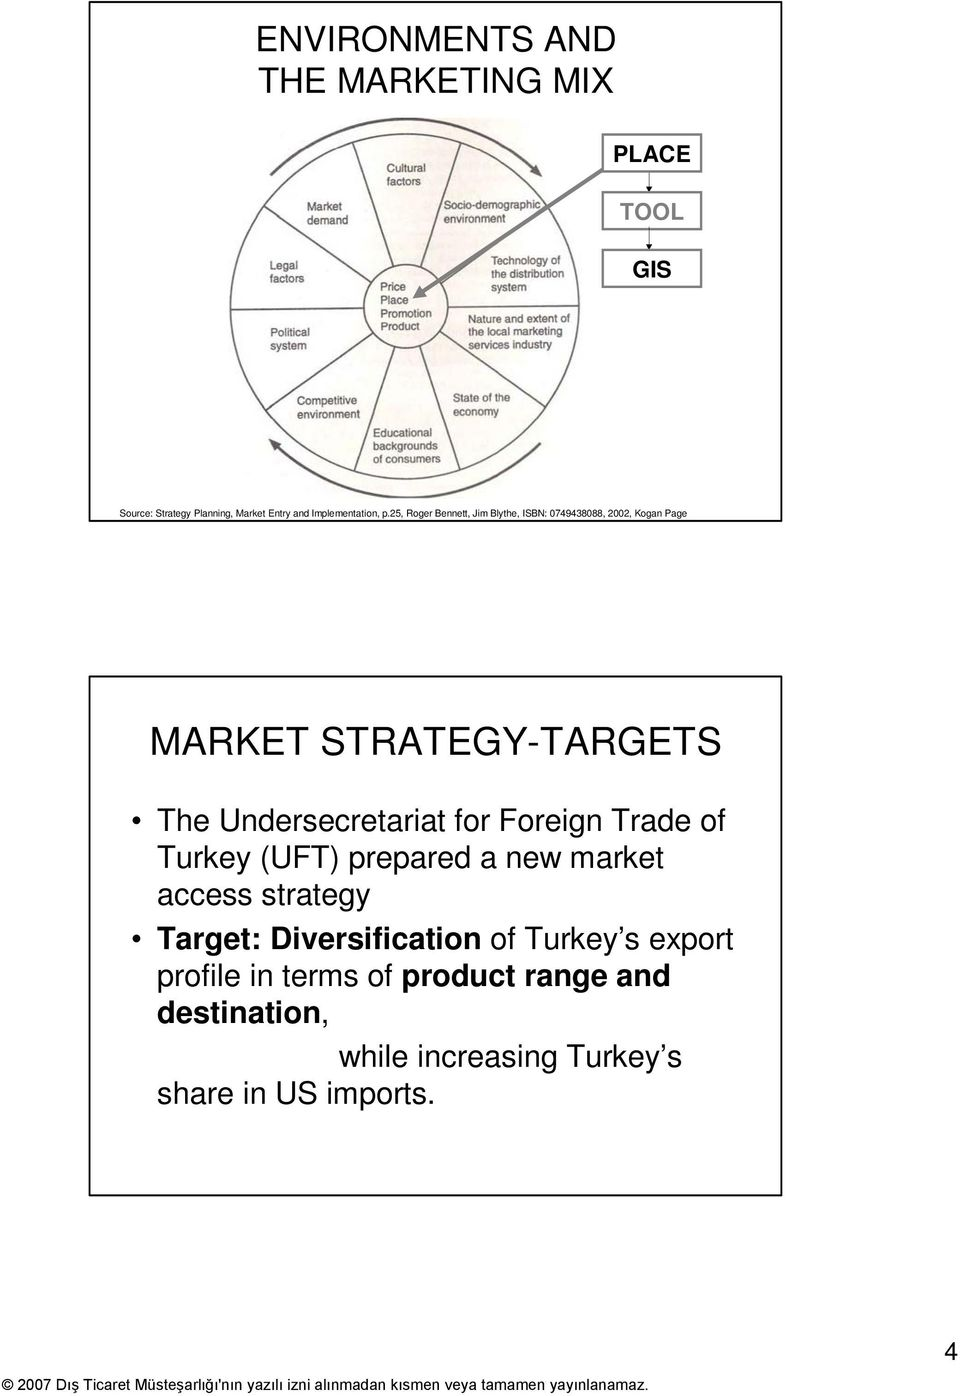 Undersecretariat for Foreign Trade of Turkey (UFT) prepared a new market access strategy Target: